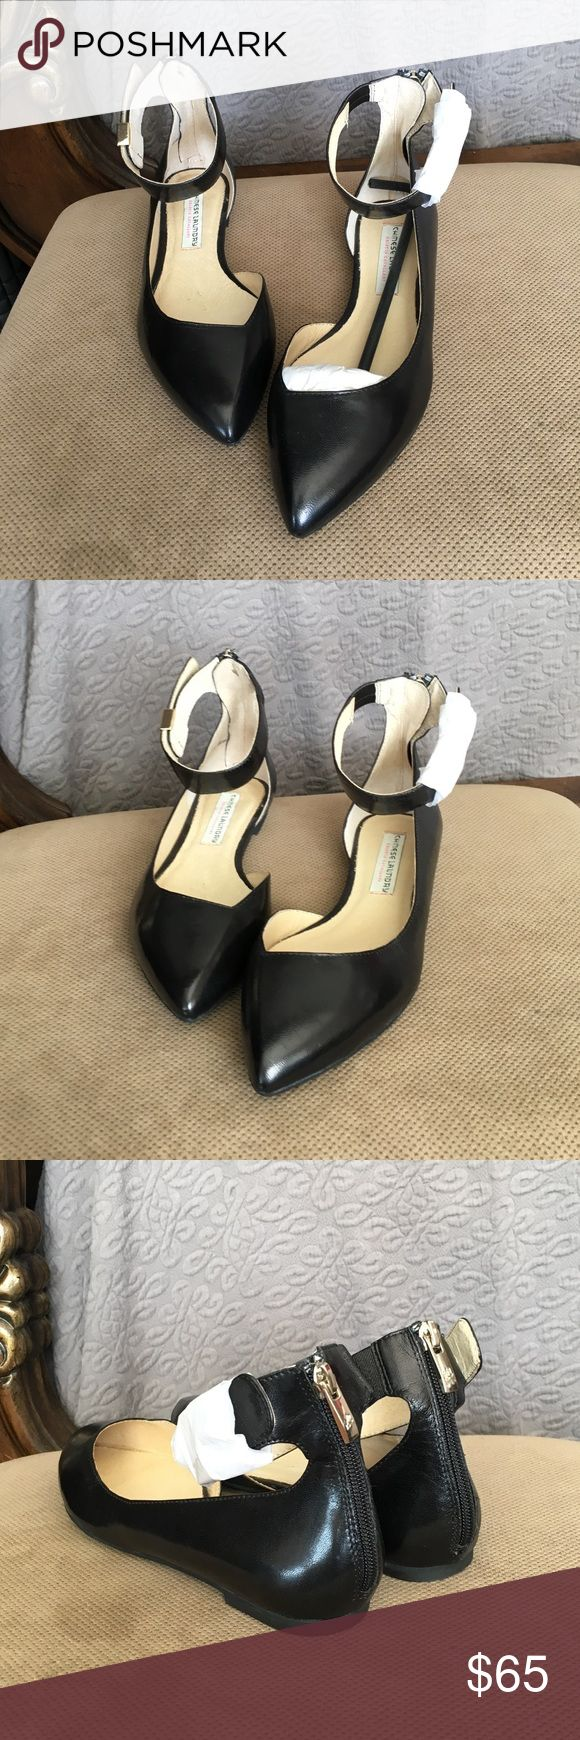 Chinese Laundry Kristin Cavallari Pointed Flats In excellent condition, they have never been worn. Genuine leather, they will fit with anything you choose to wear. Chinese Laundry Shoes Flats & Loafers